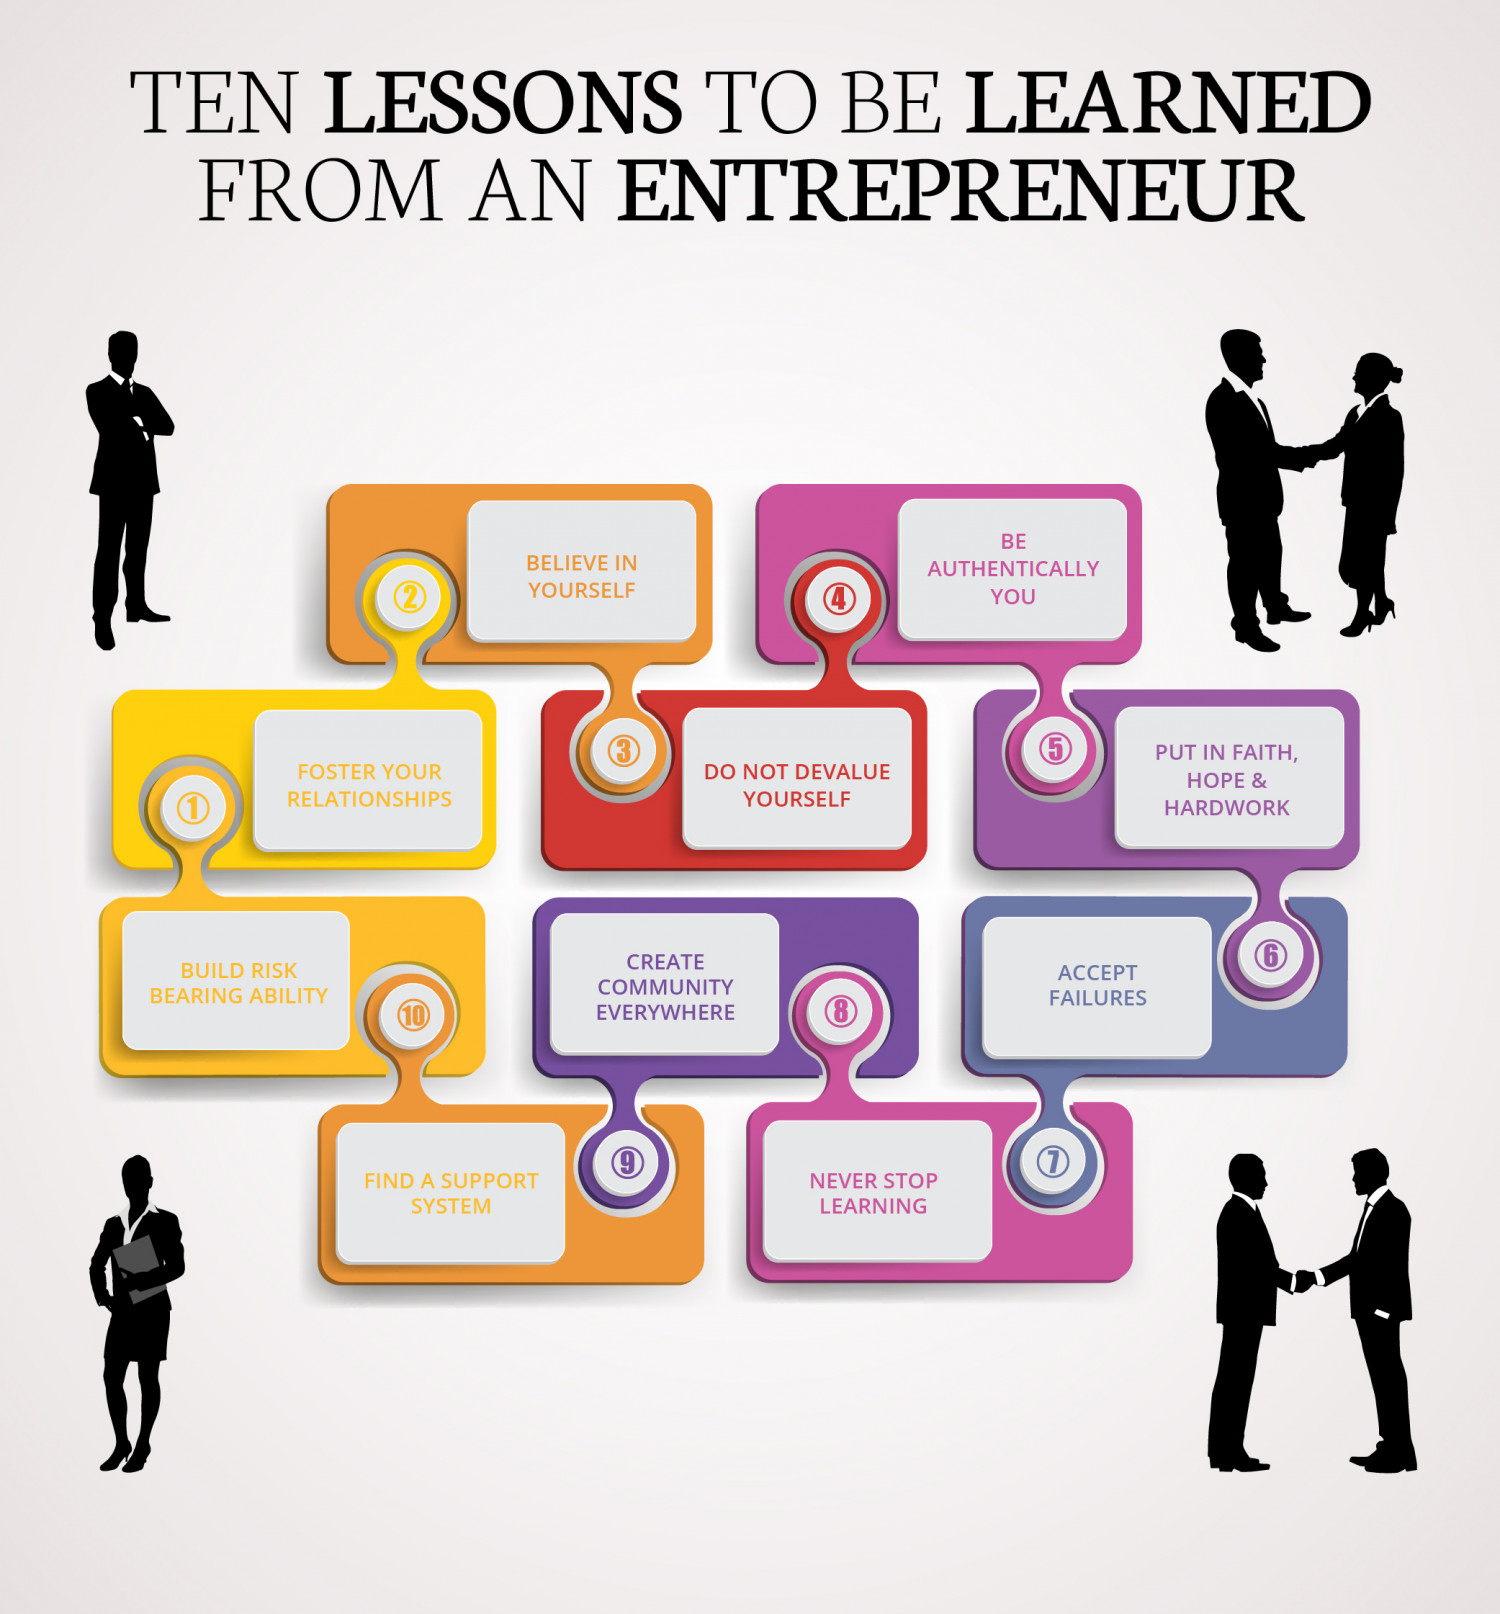 Grasping Lessons From The Personality Of An Entrepreneur Infographic